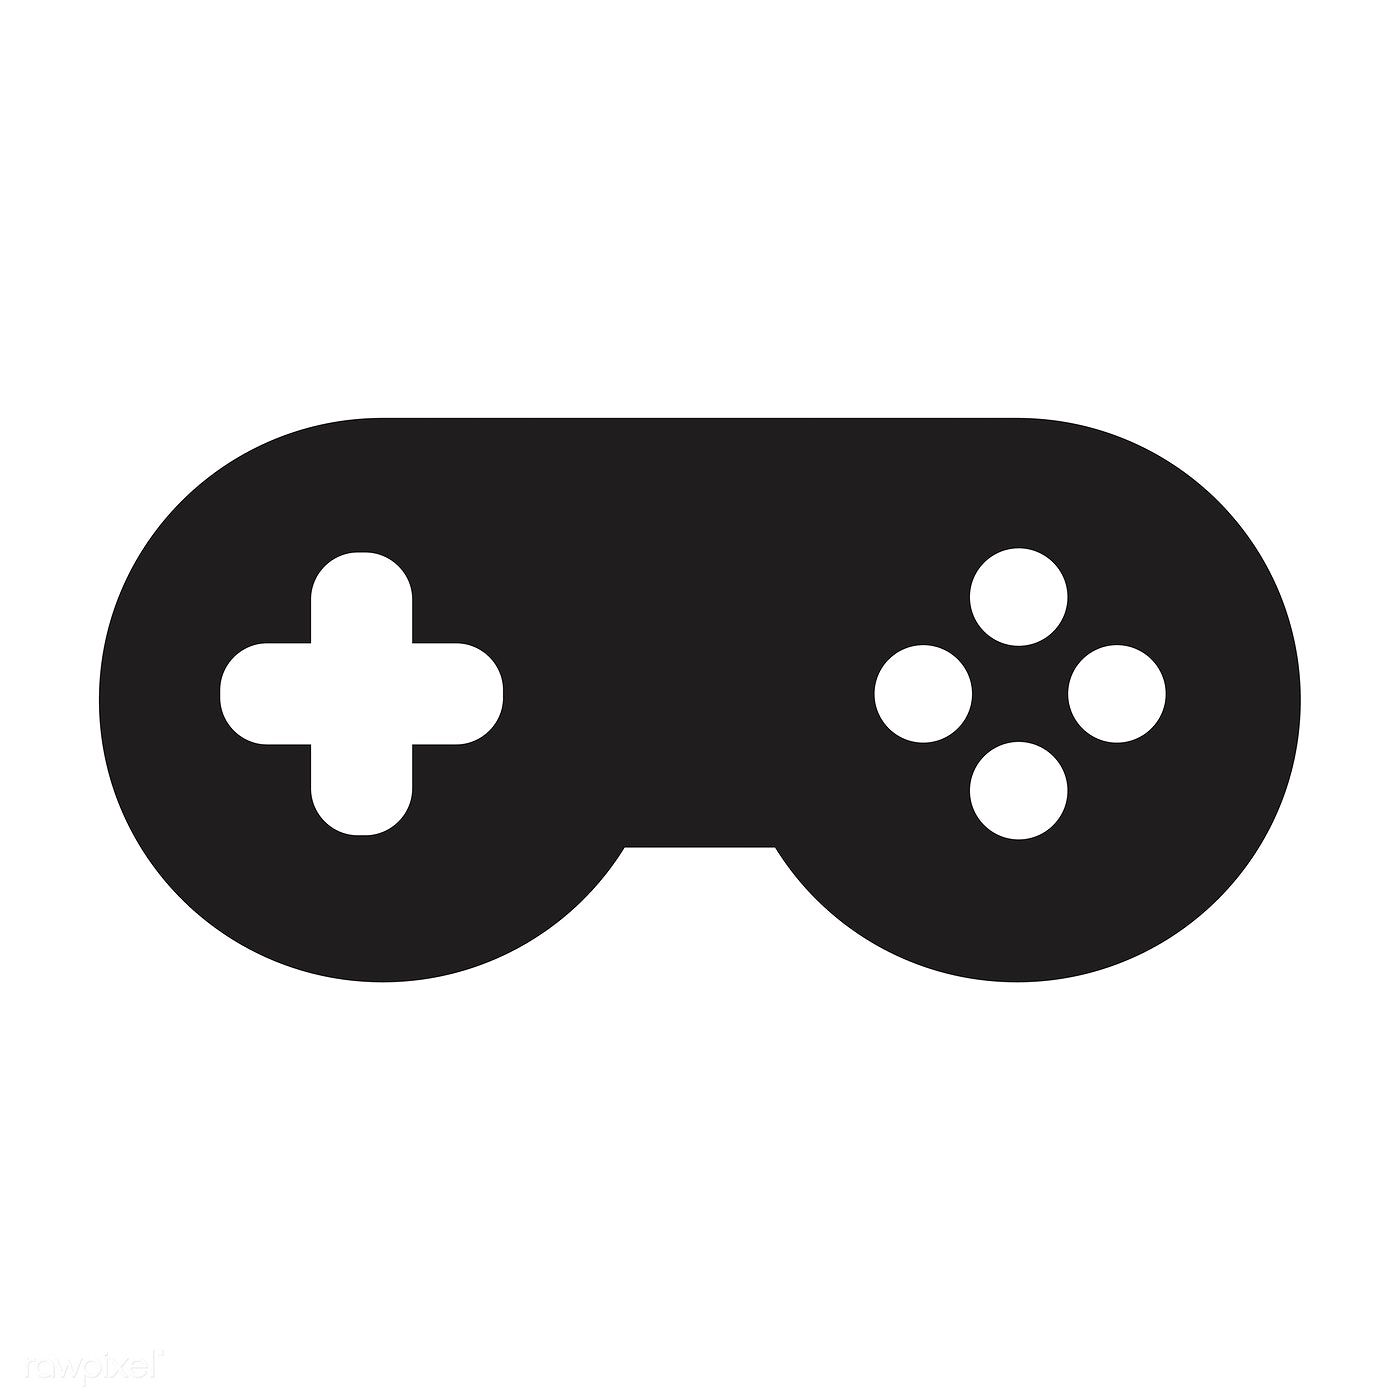 43+ Game controller svg free ideas